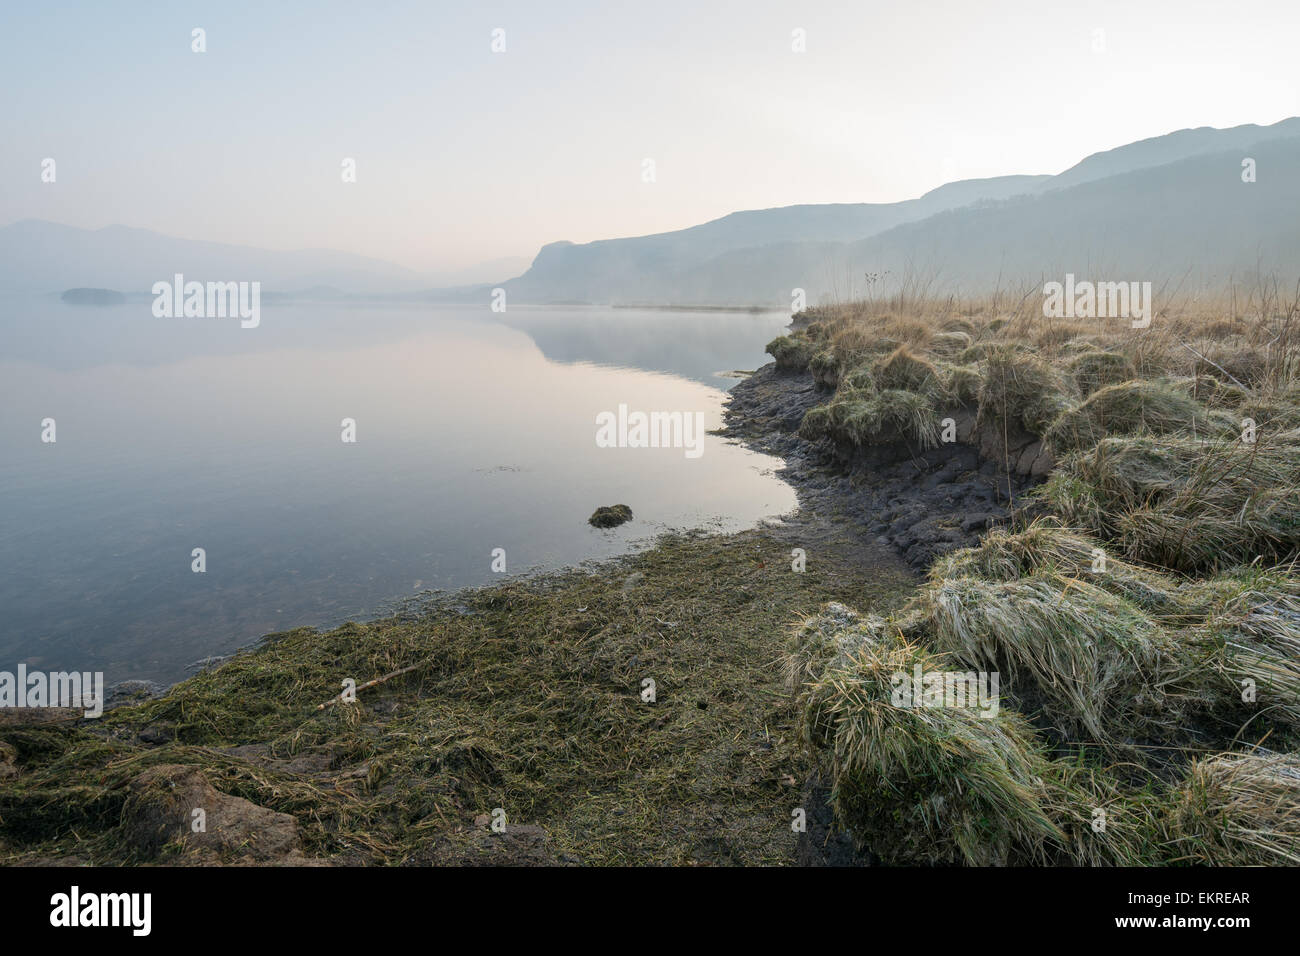 Early morning mist blurs the horizon with peat revealed at the waters edge - Derwentwater in the English Lake District - Stock Image